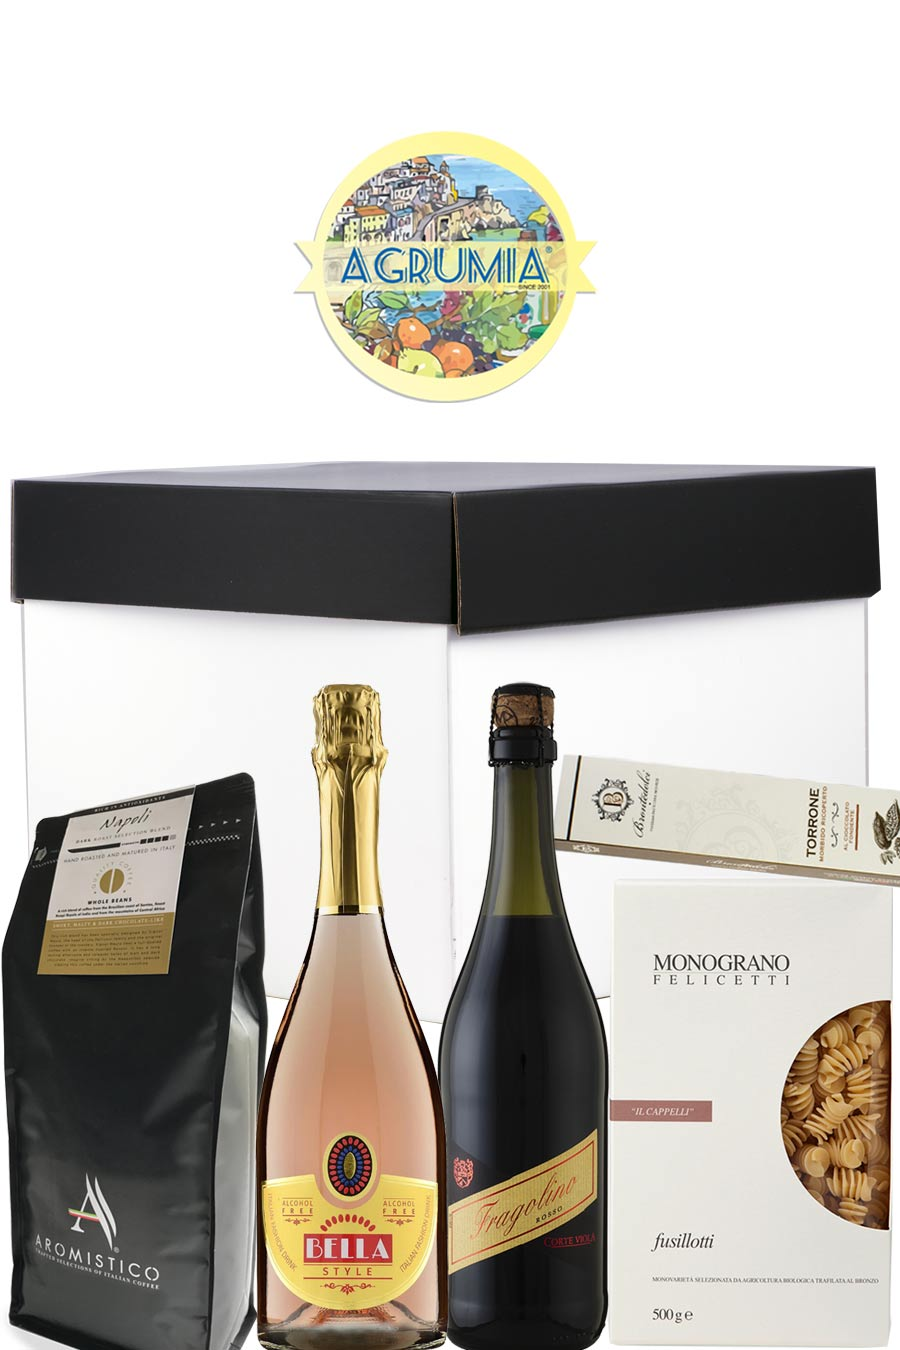 Agrumia The Gourmet Hamper